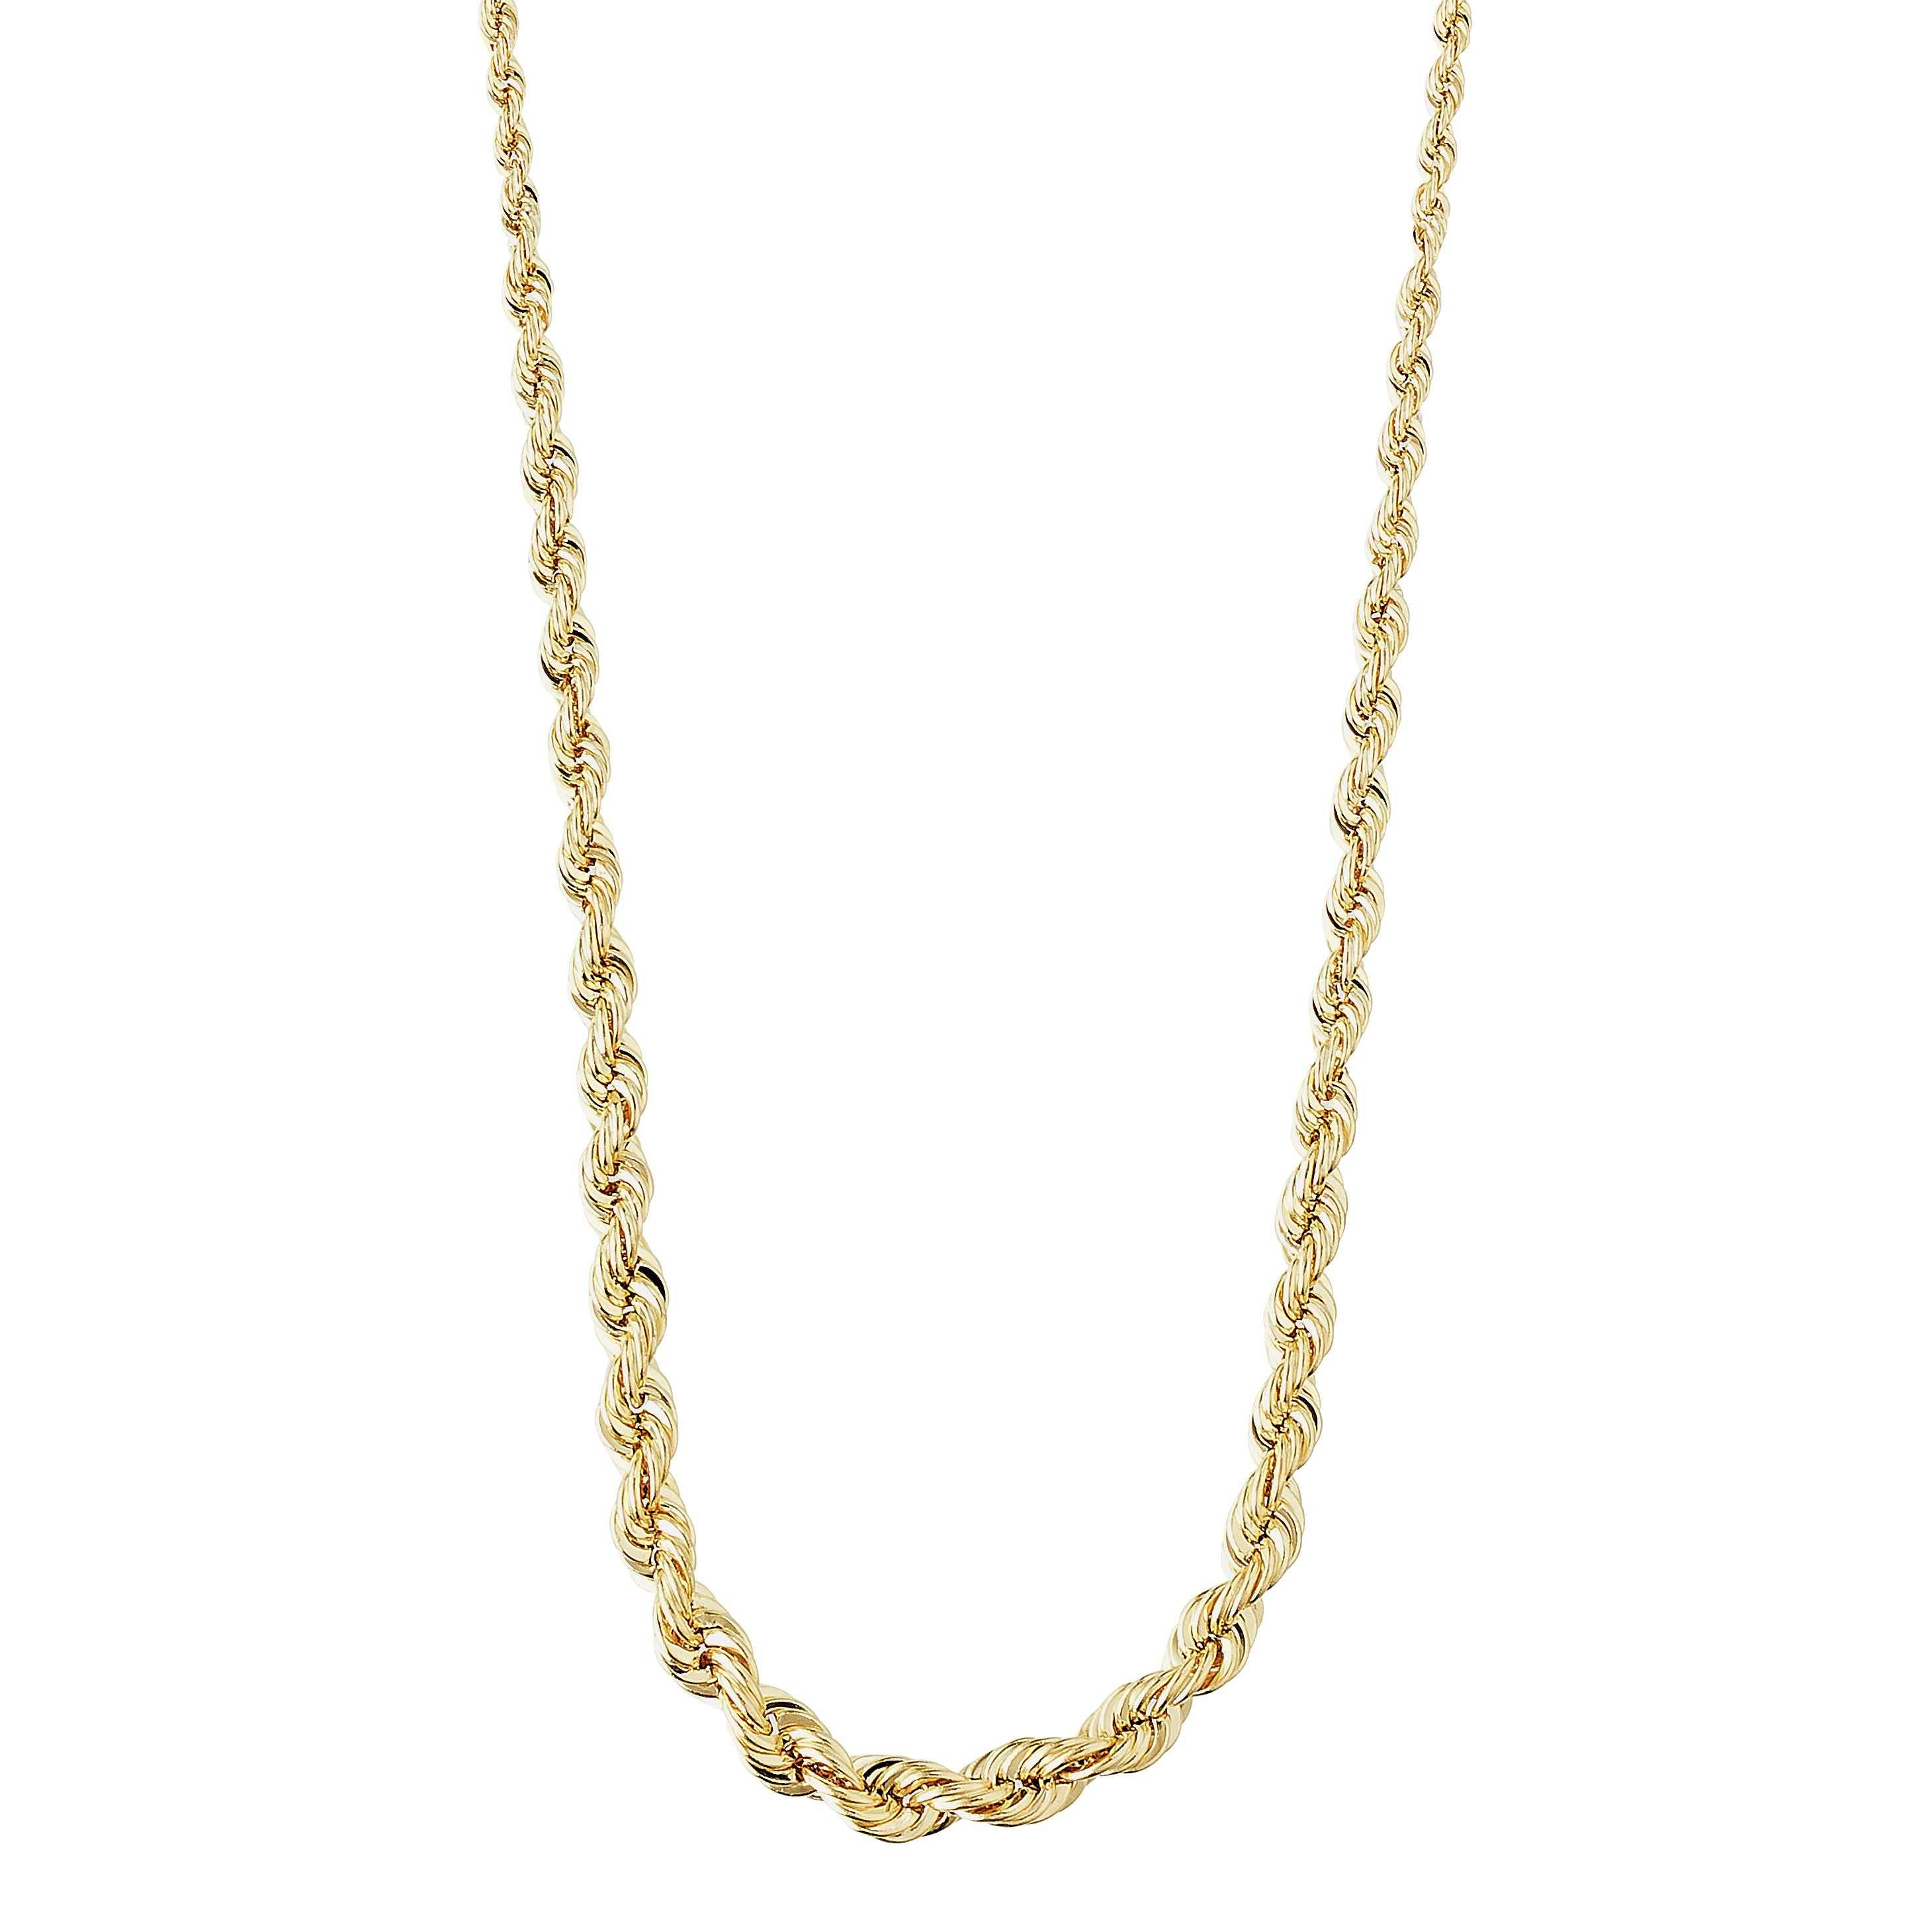 Revere 9ct Gold Rope Chain Necklace